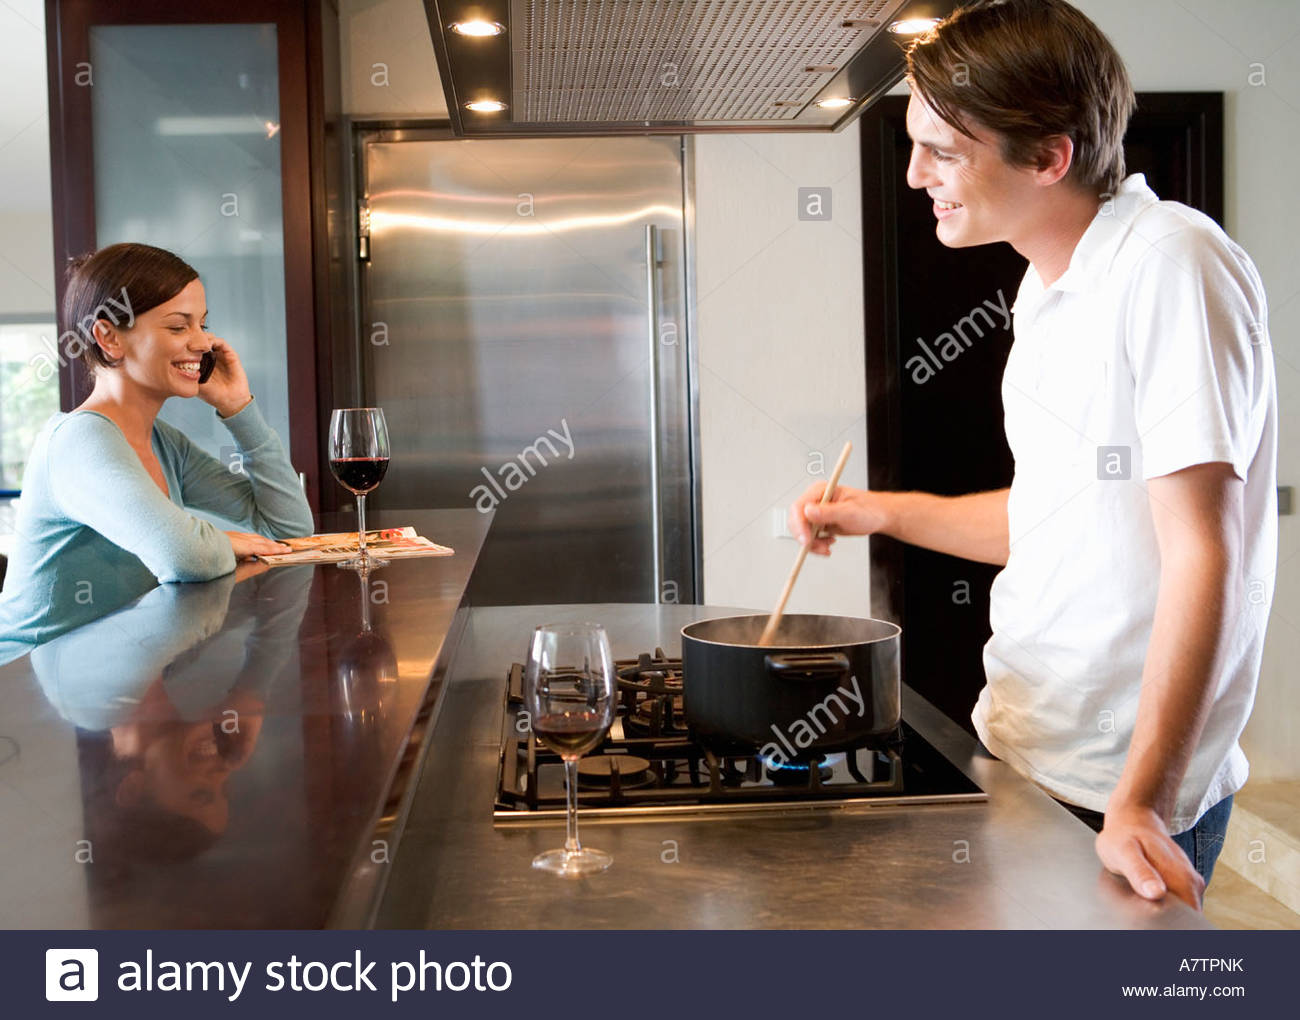 A young couple at home - Stock Image